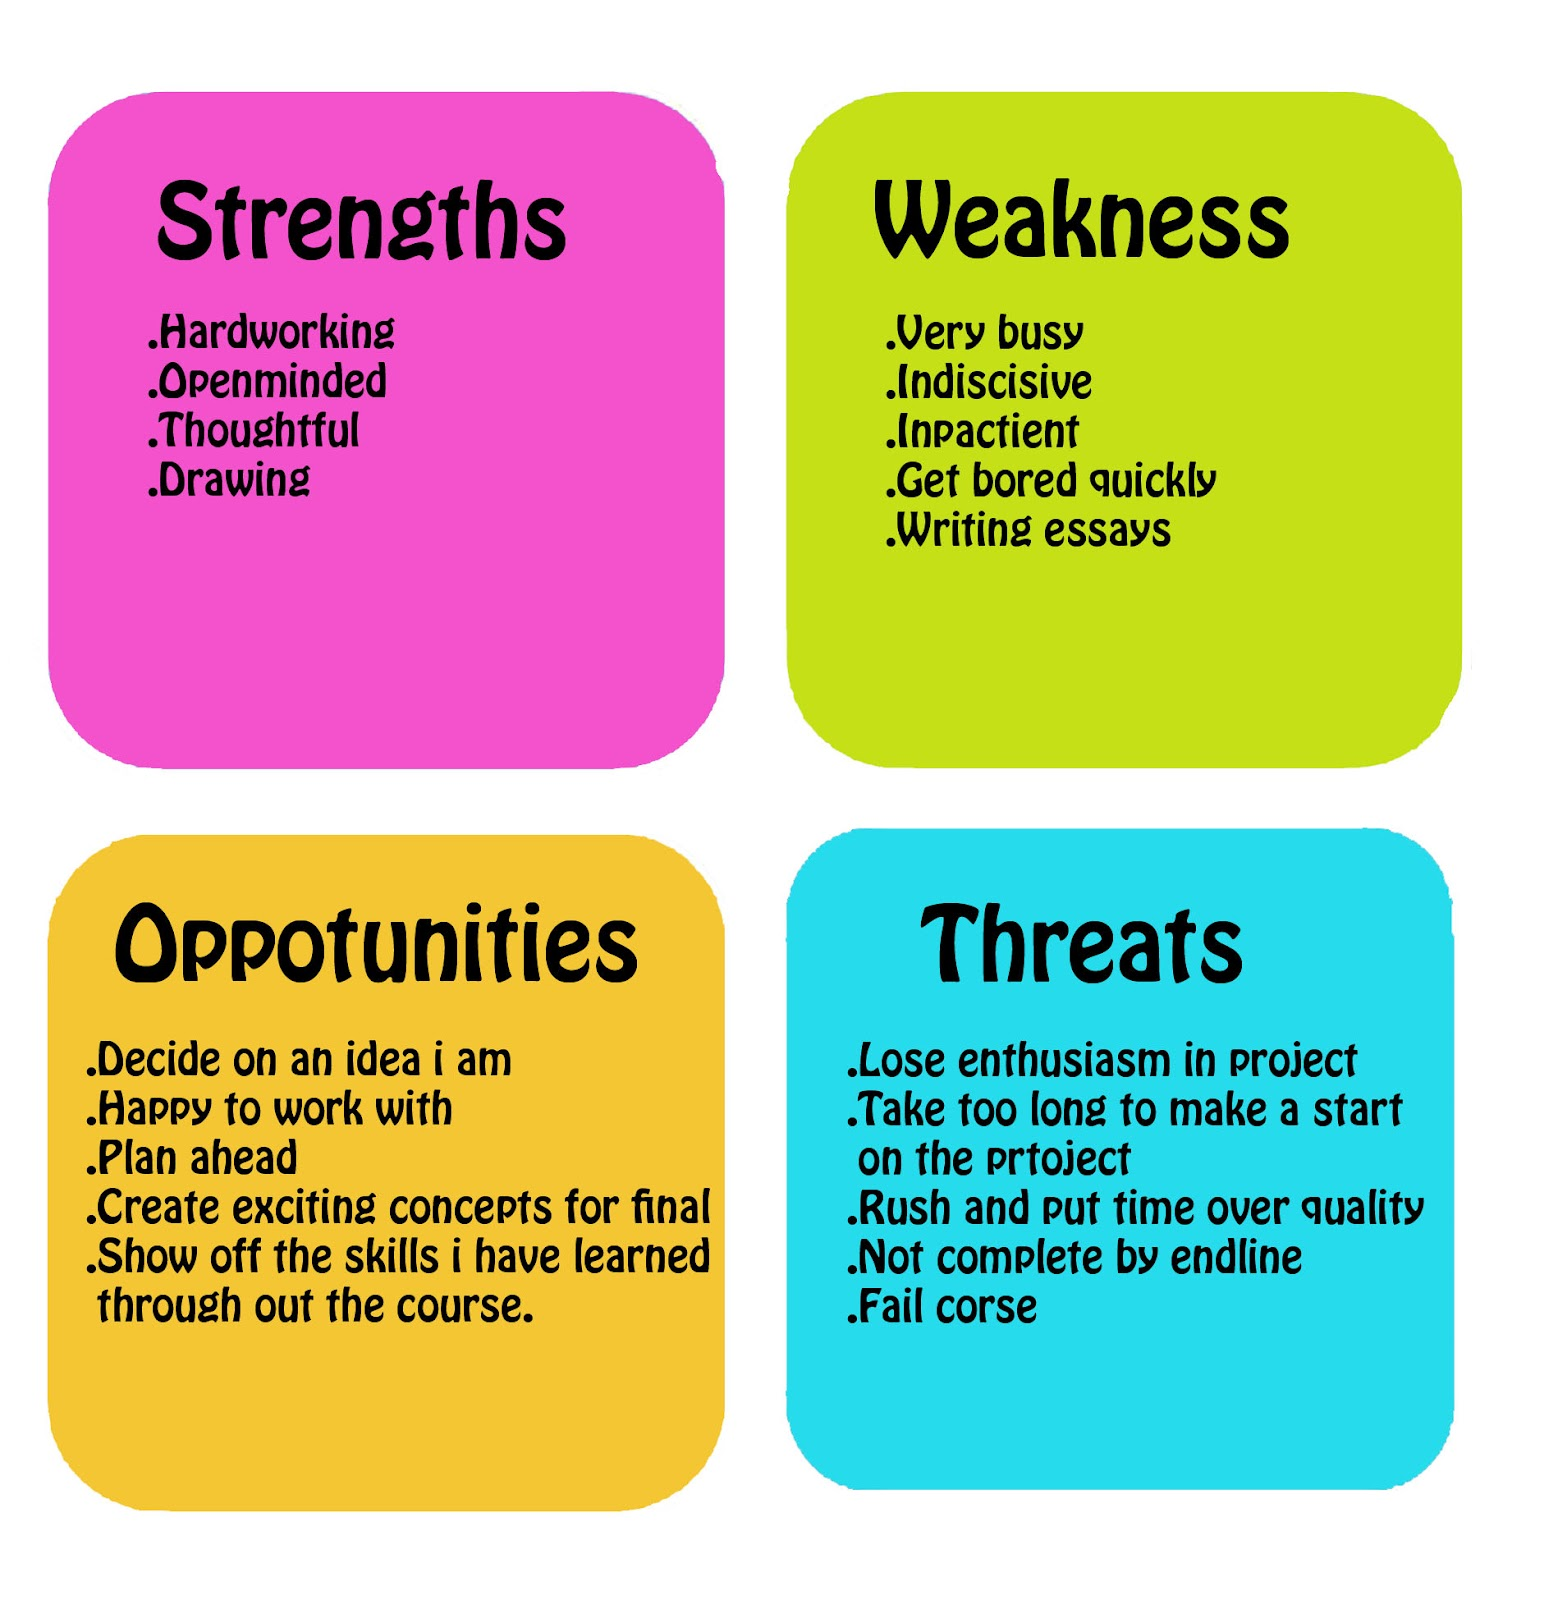 marketing plan for amazoncom essay The swot analysis of amazon discusses the internal analysis of one of the strongest online retailers across the marketing mix of all brands swot analysis of brands.